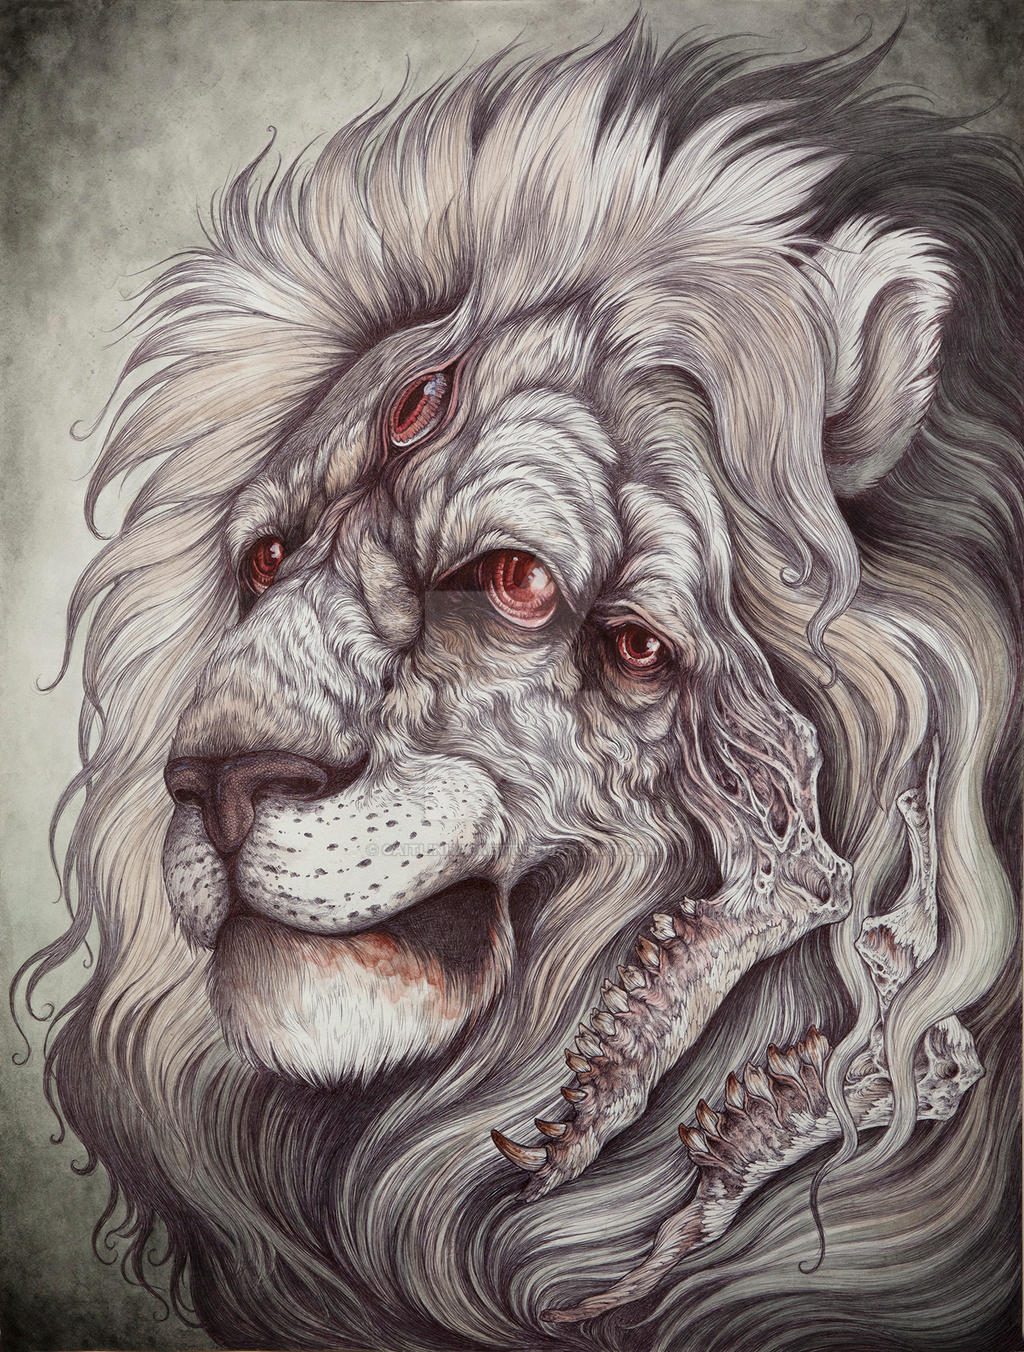 Nemean Lion by CaitlinHackett on DeviantArt